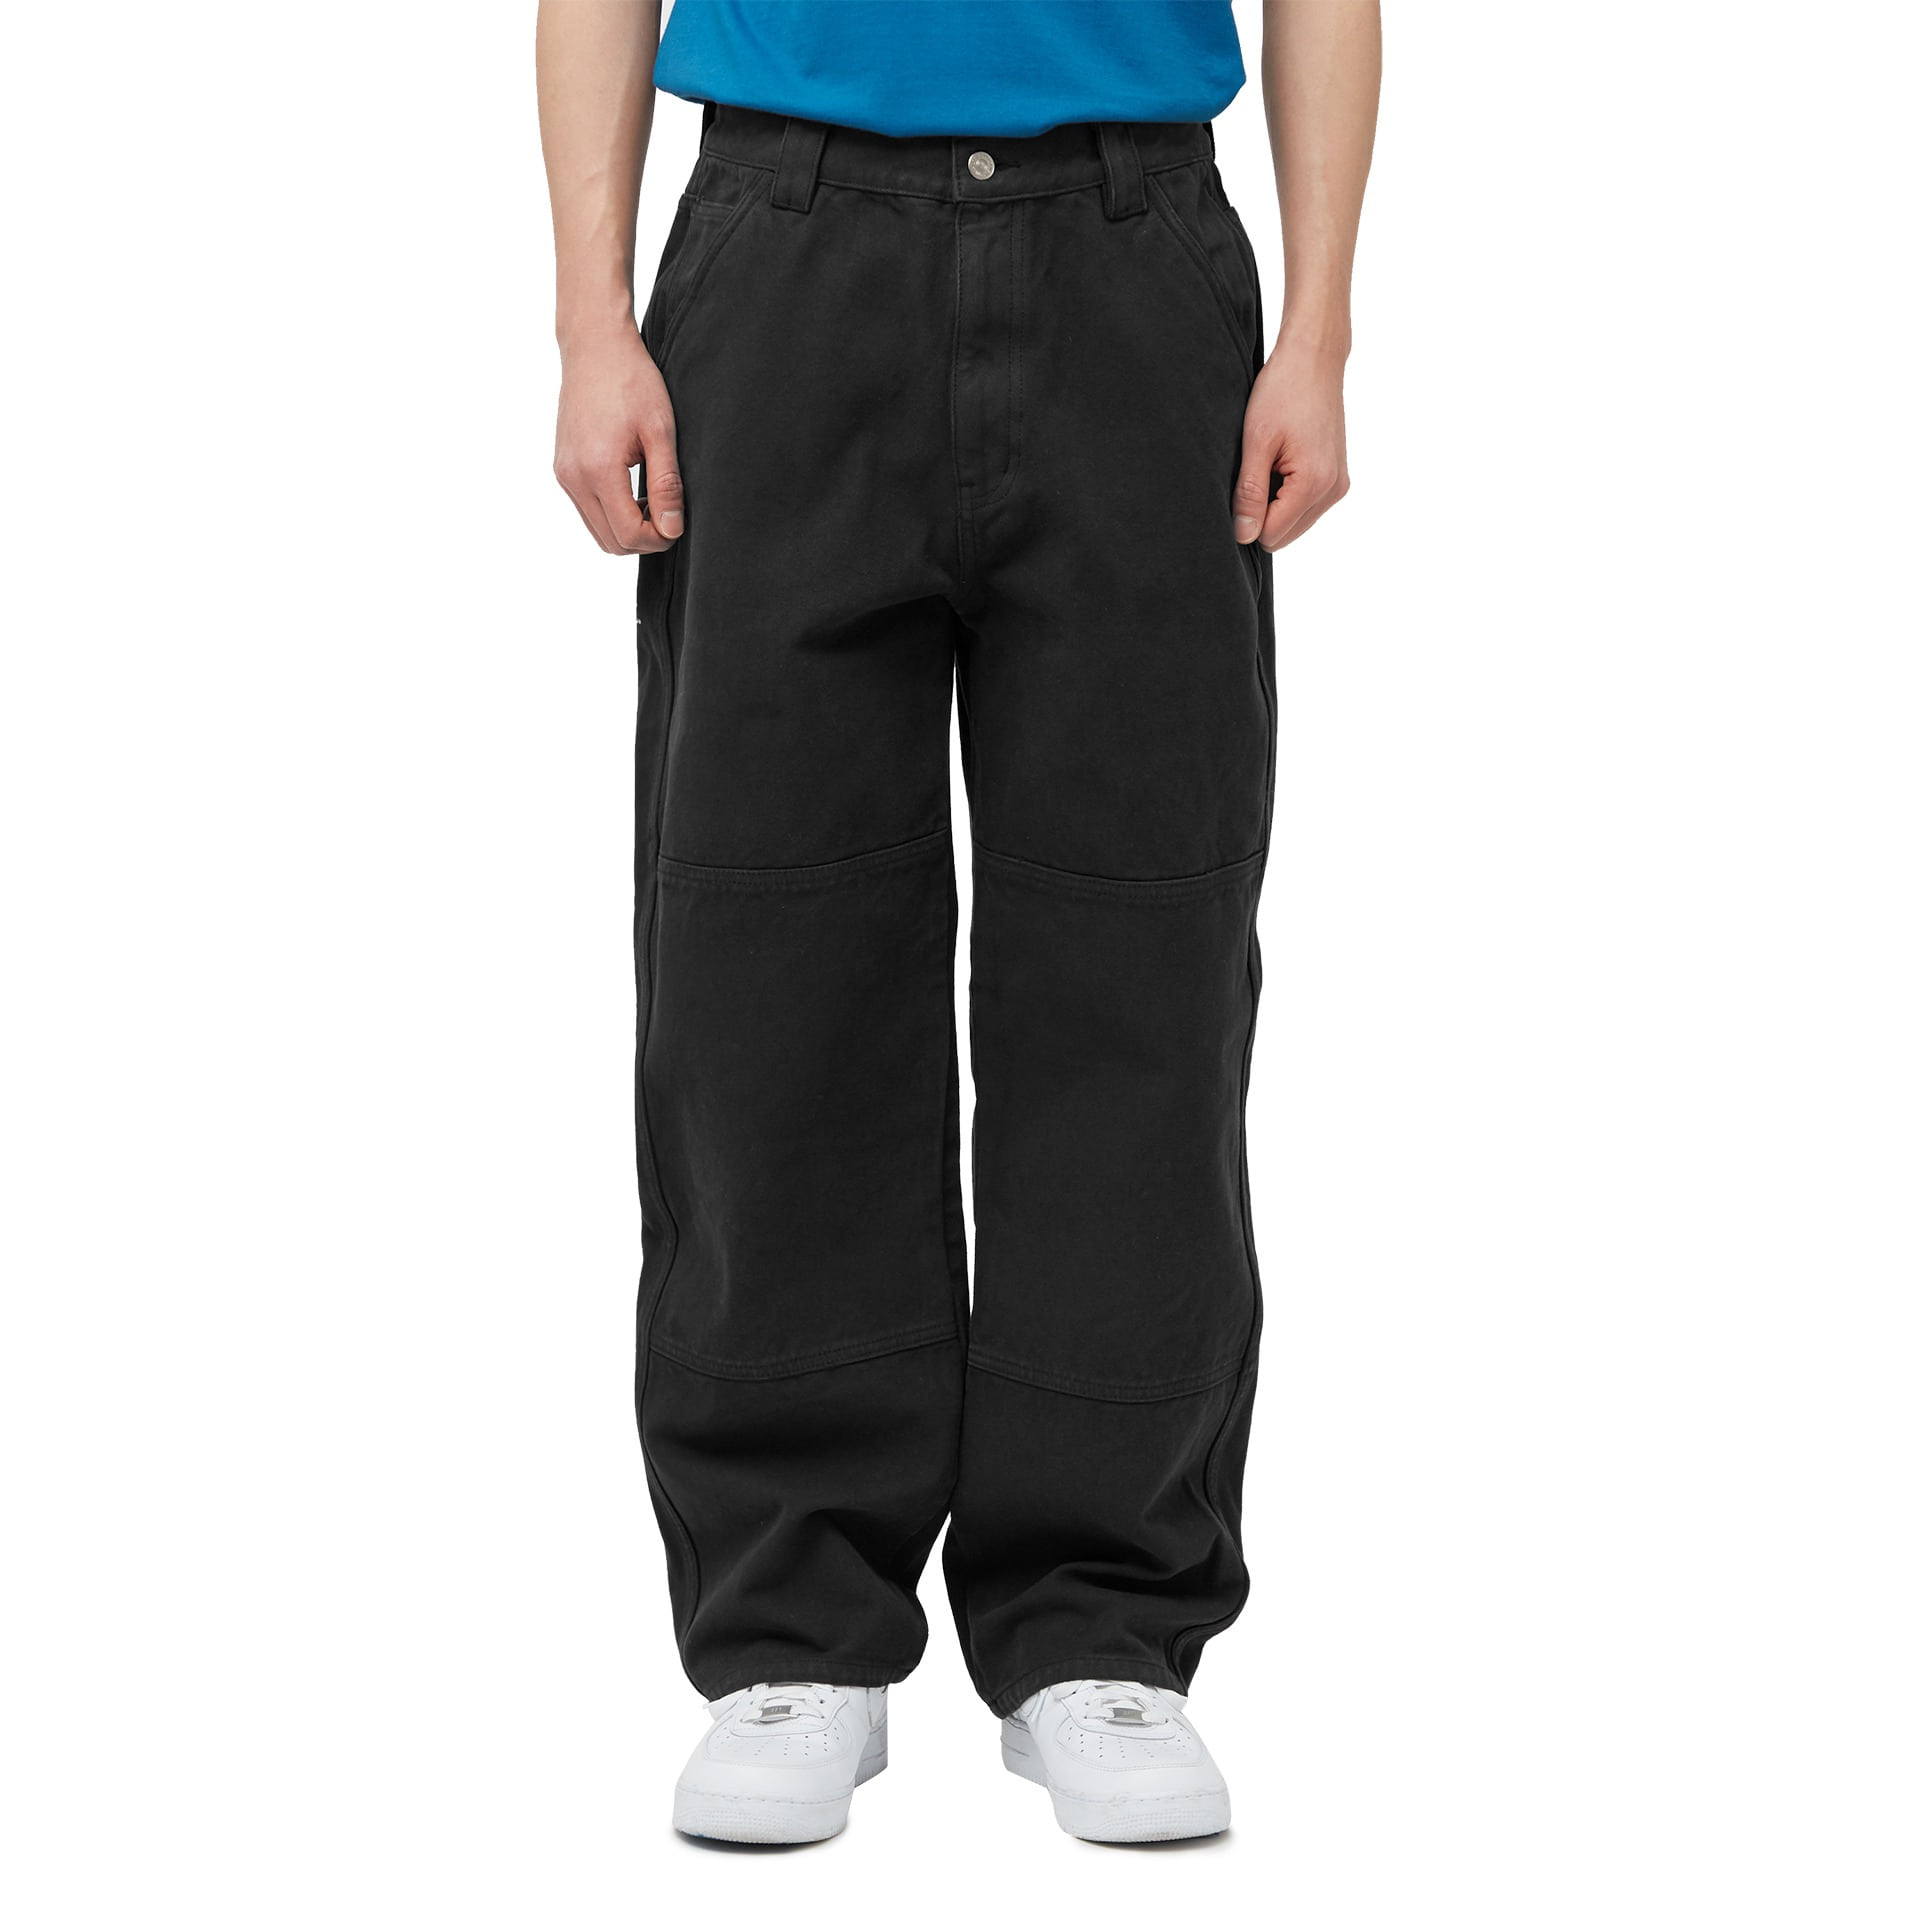 LMC OVERWASHED CANVAS DOUBLE KNEE PANTS black